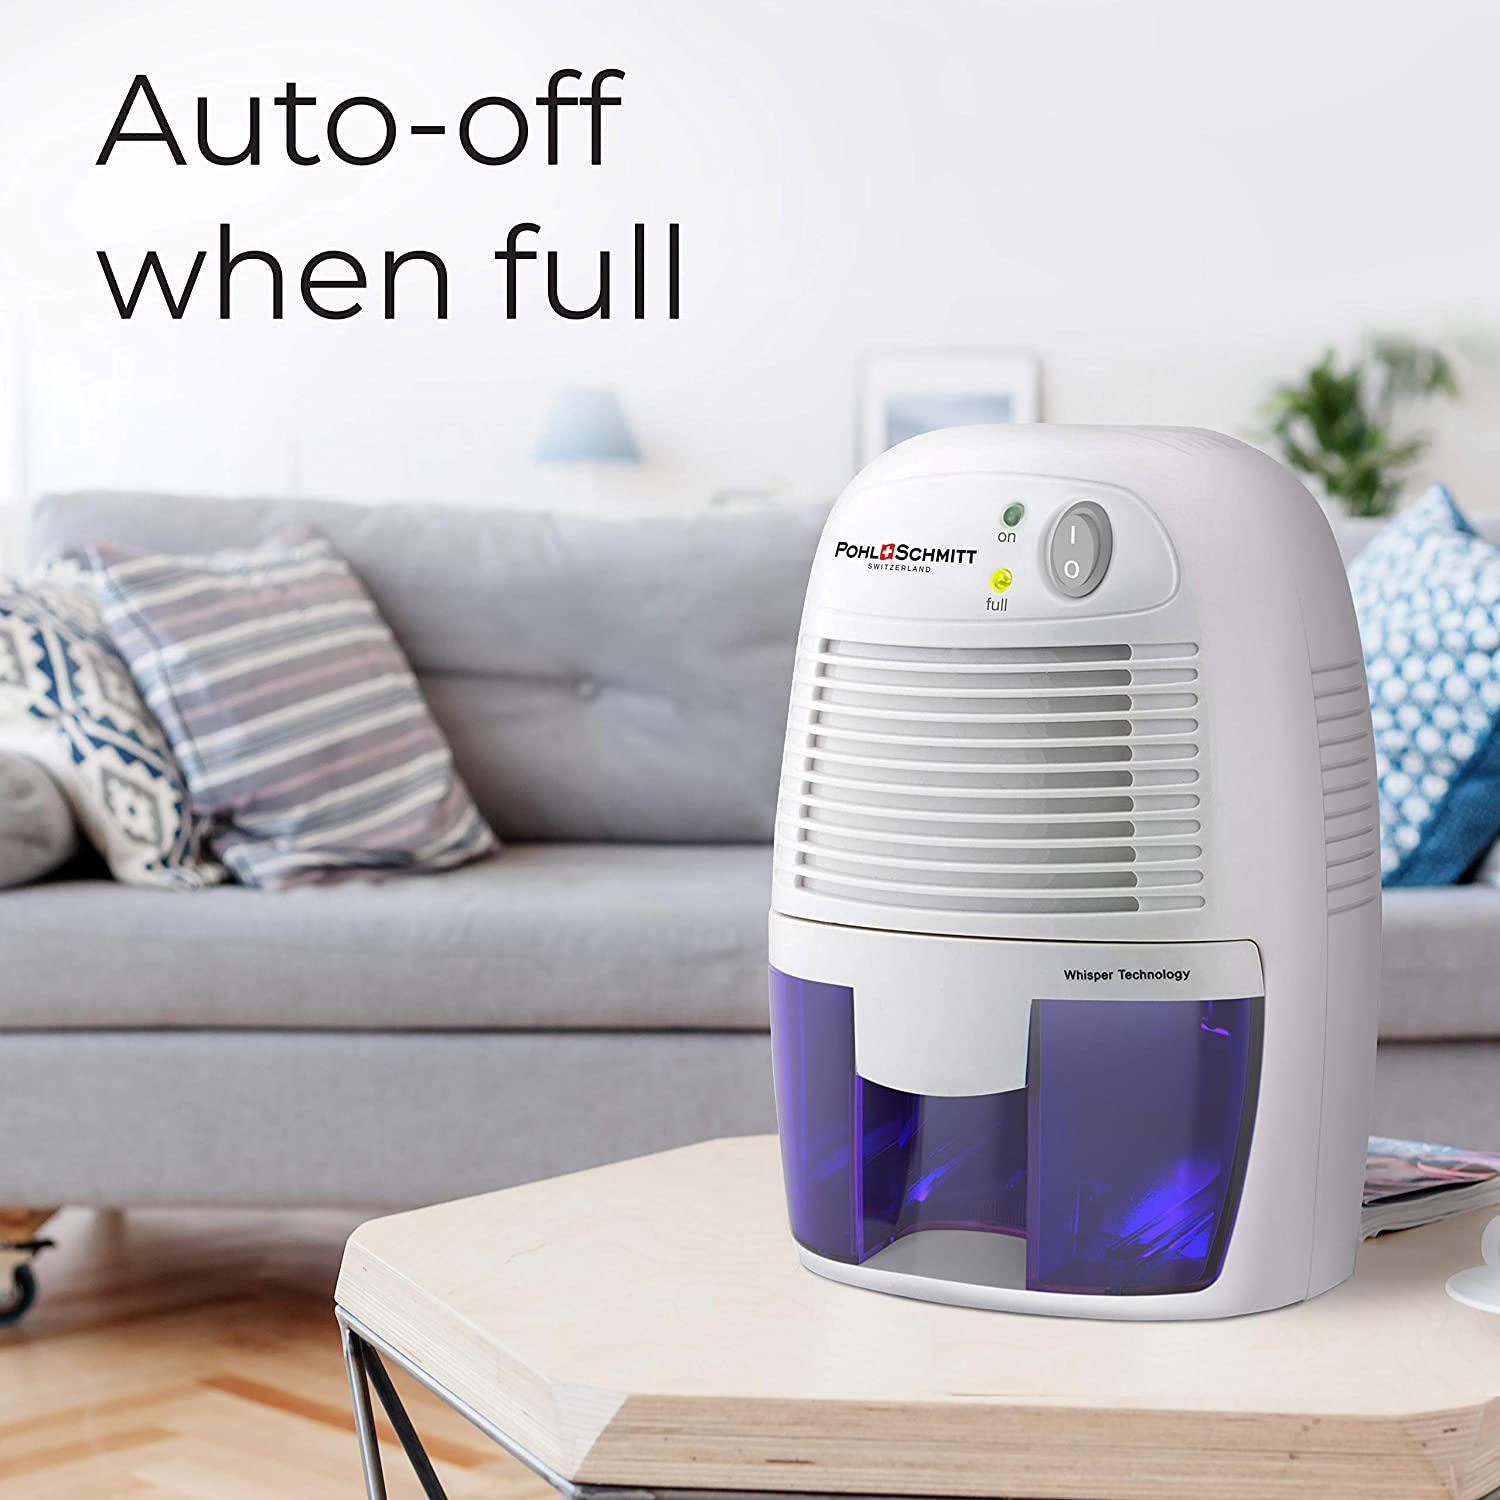 Removes Air Moisture to Prevent Dust Mites Mold /& Mildew Small Portable Design for Homes Bathrooms and Bedrooms Ultra Quiet Basements Pohl Schmitt Mini Dehumidifier 17oz Water Tank